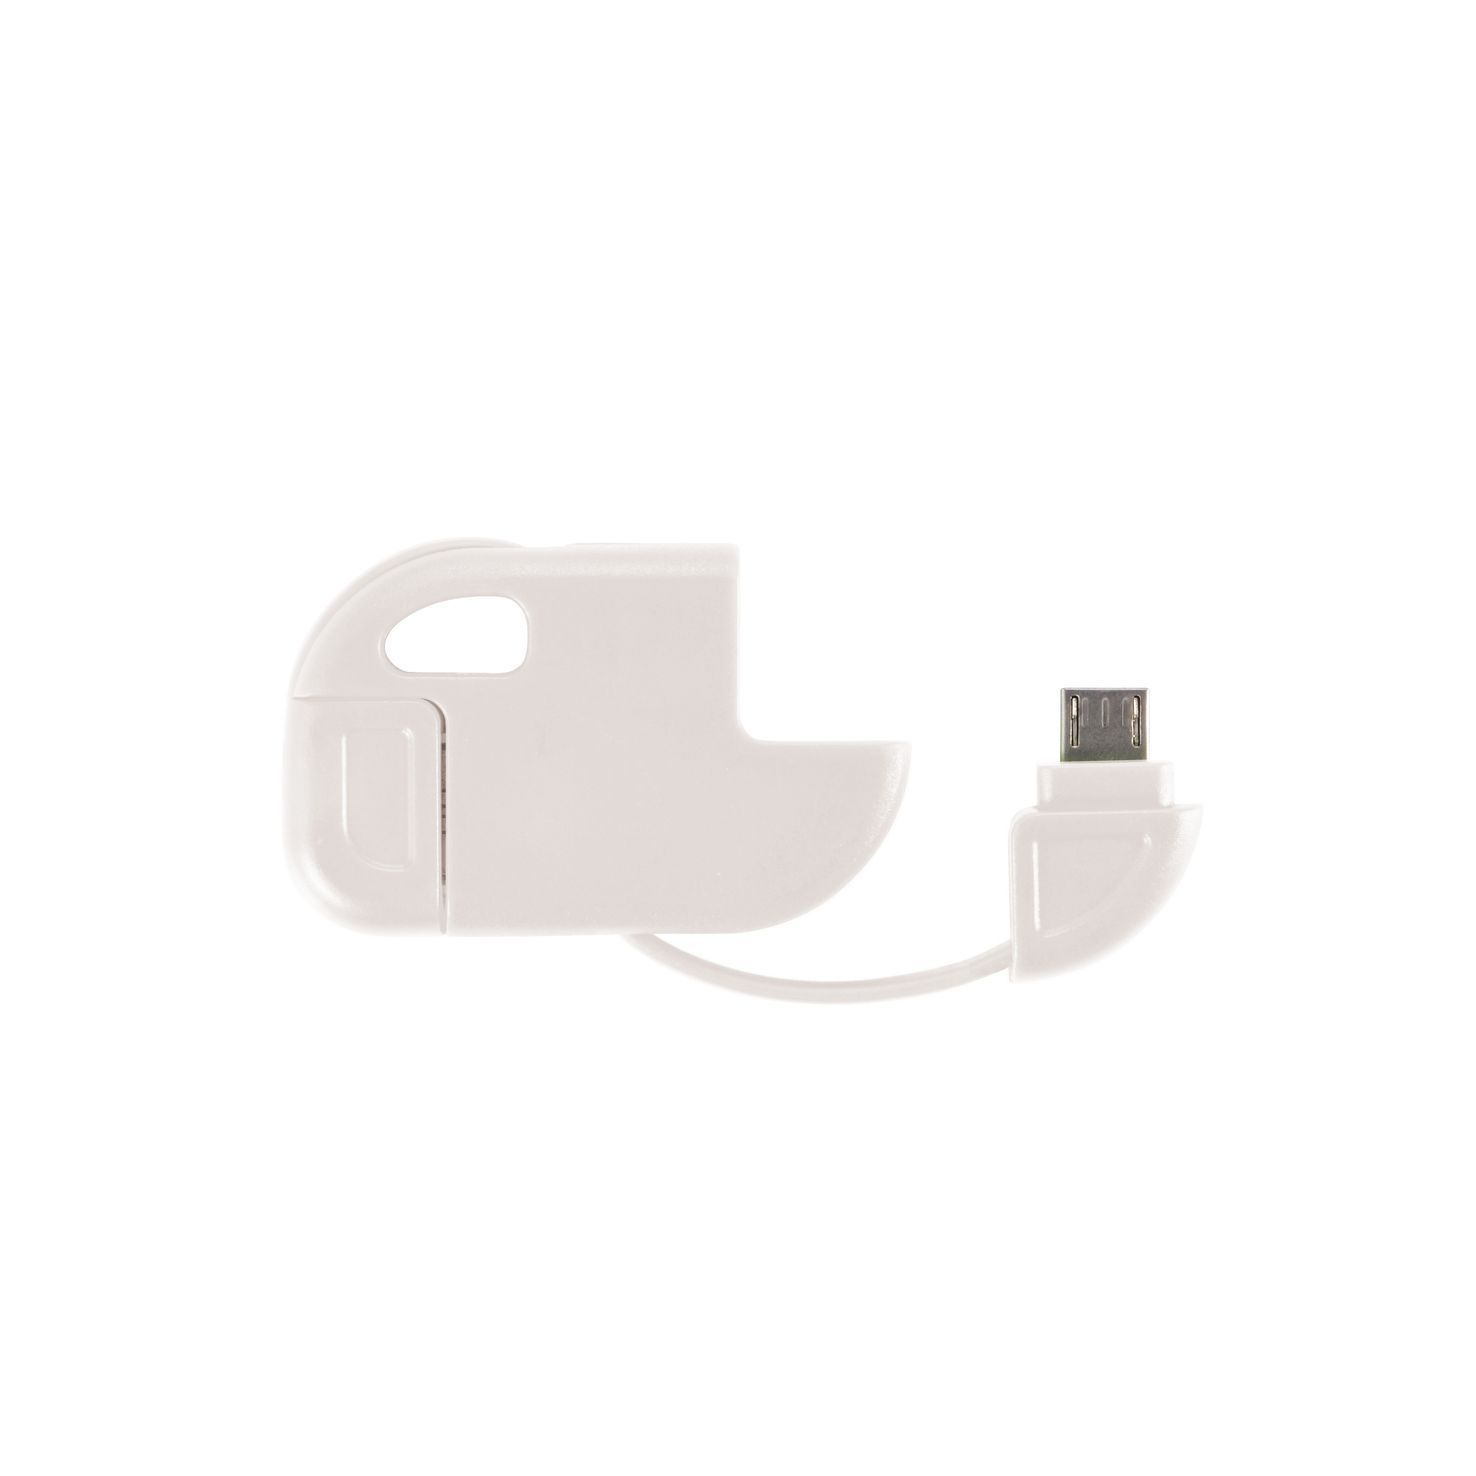 Witte USB kabel | Micro USB